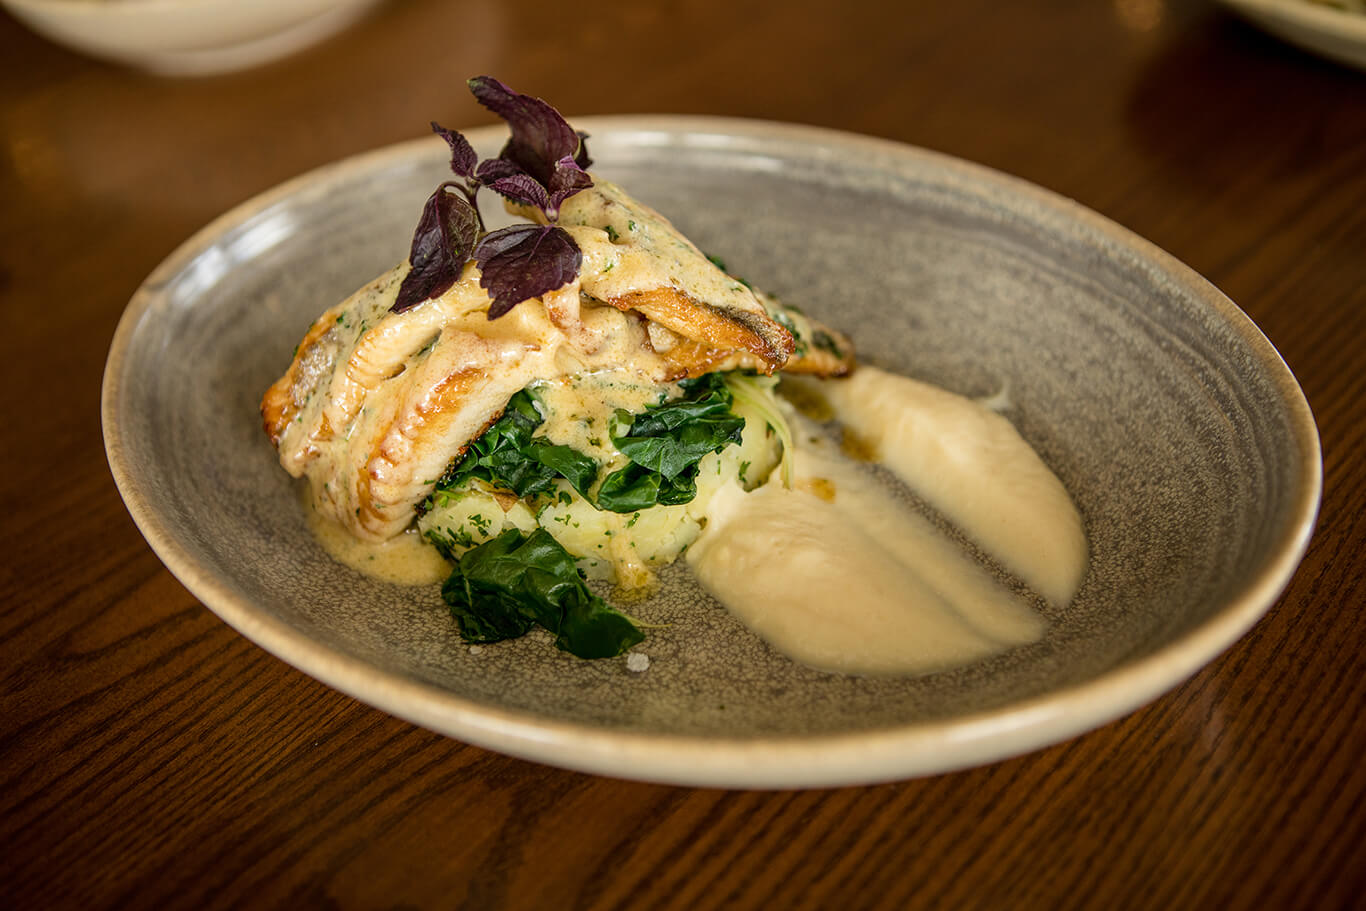 The Fat Duck's Fish of the Day, a plate of fried fish with a spinach stuffing and a white sauce.